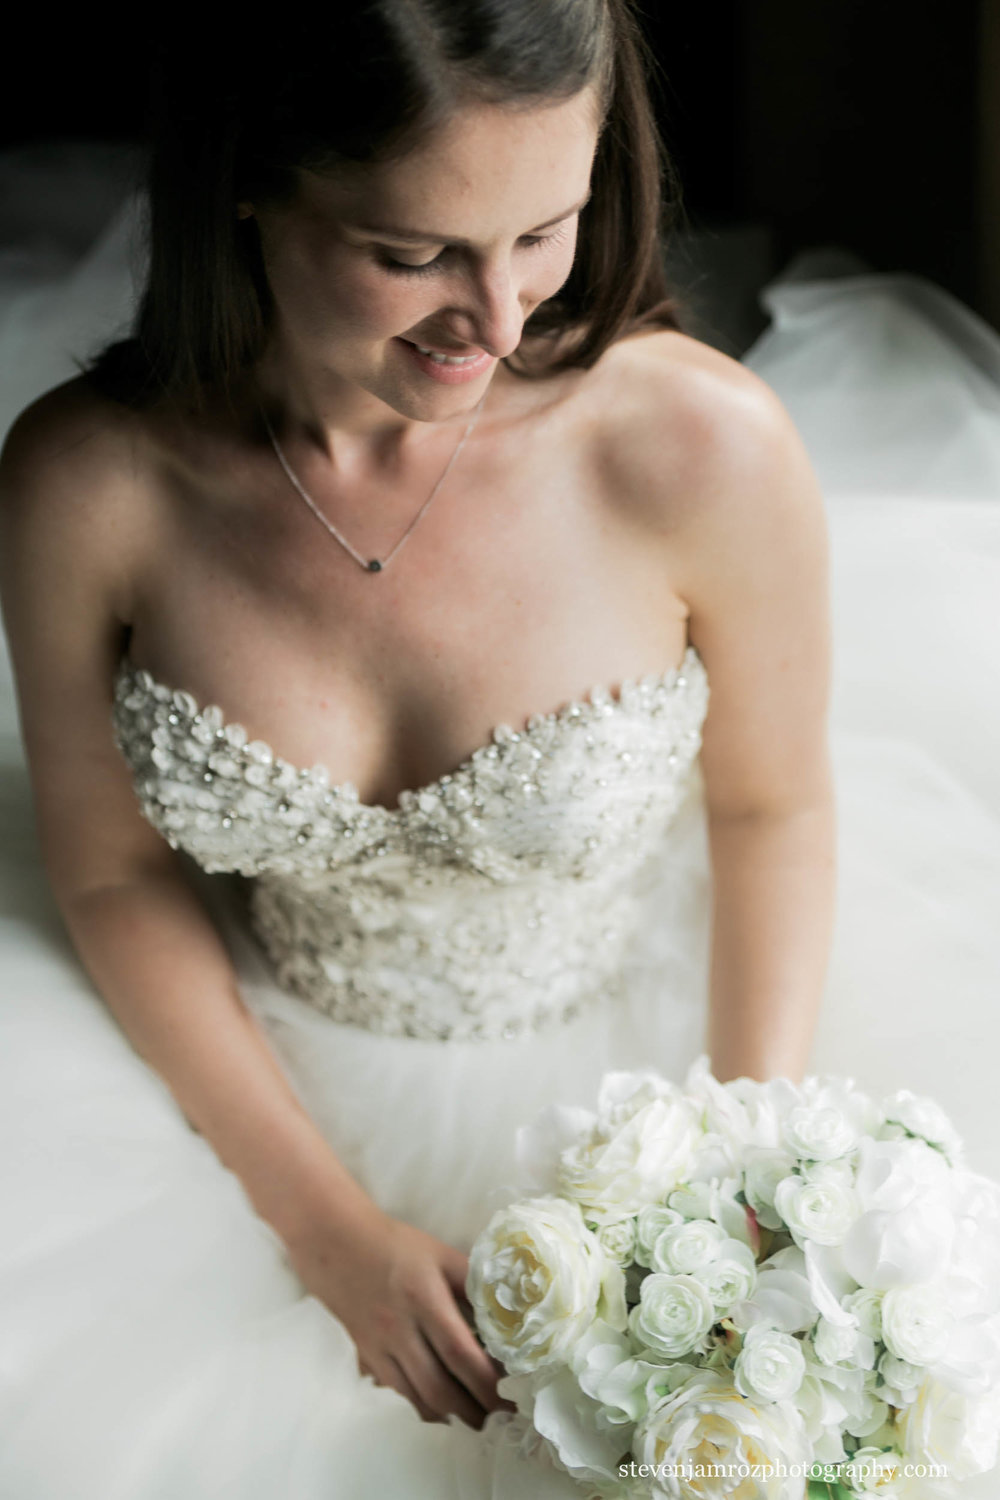 soft-window-bridal-portrait-raleigh-steven-jamroz-photography-0311.jpg